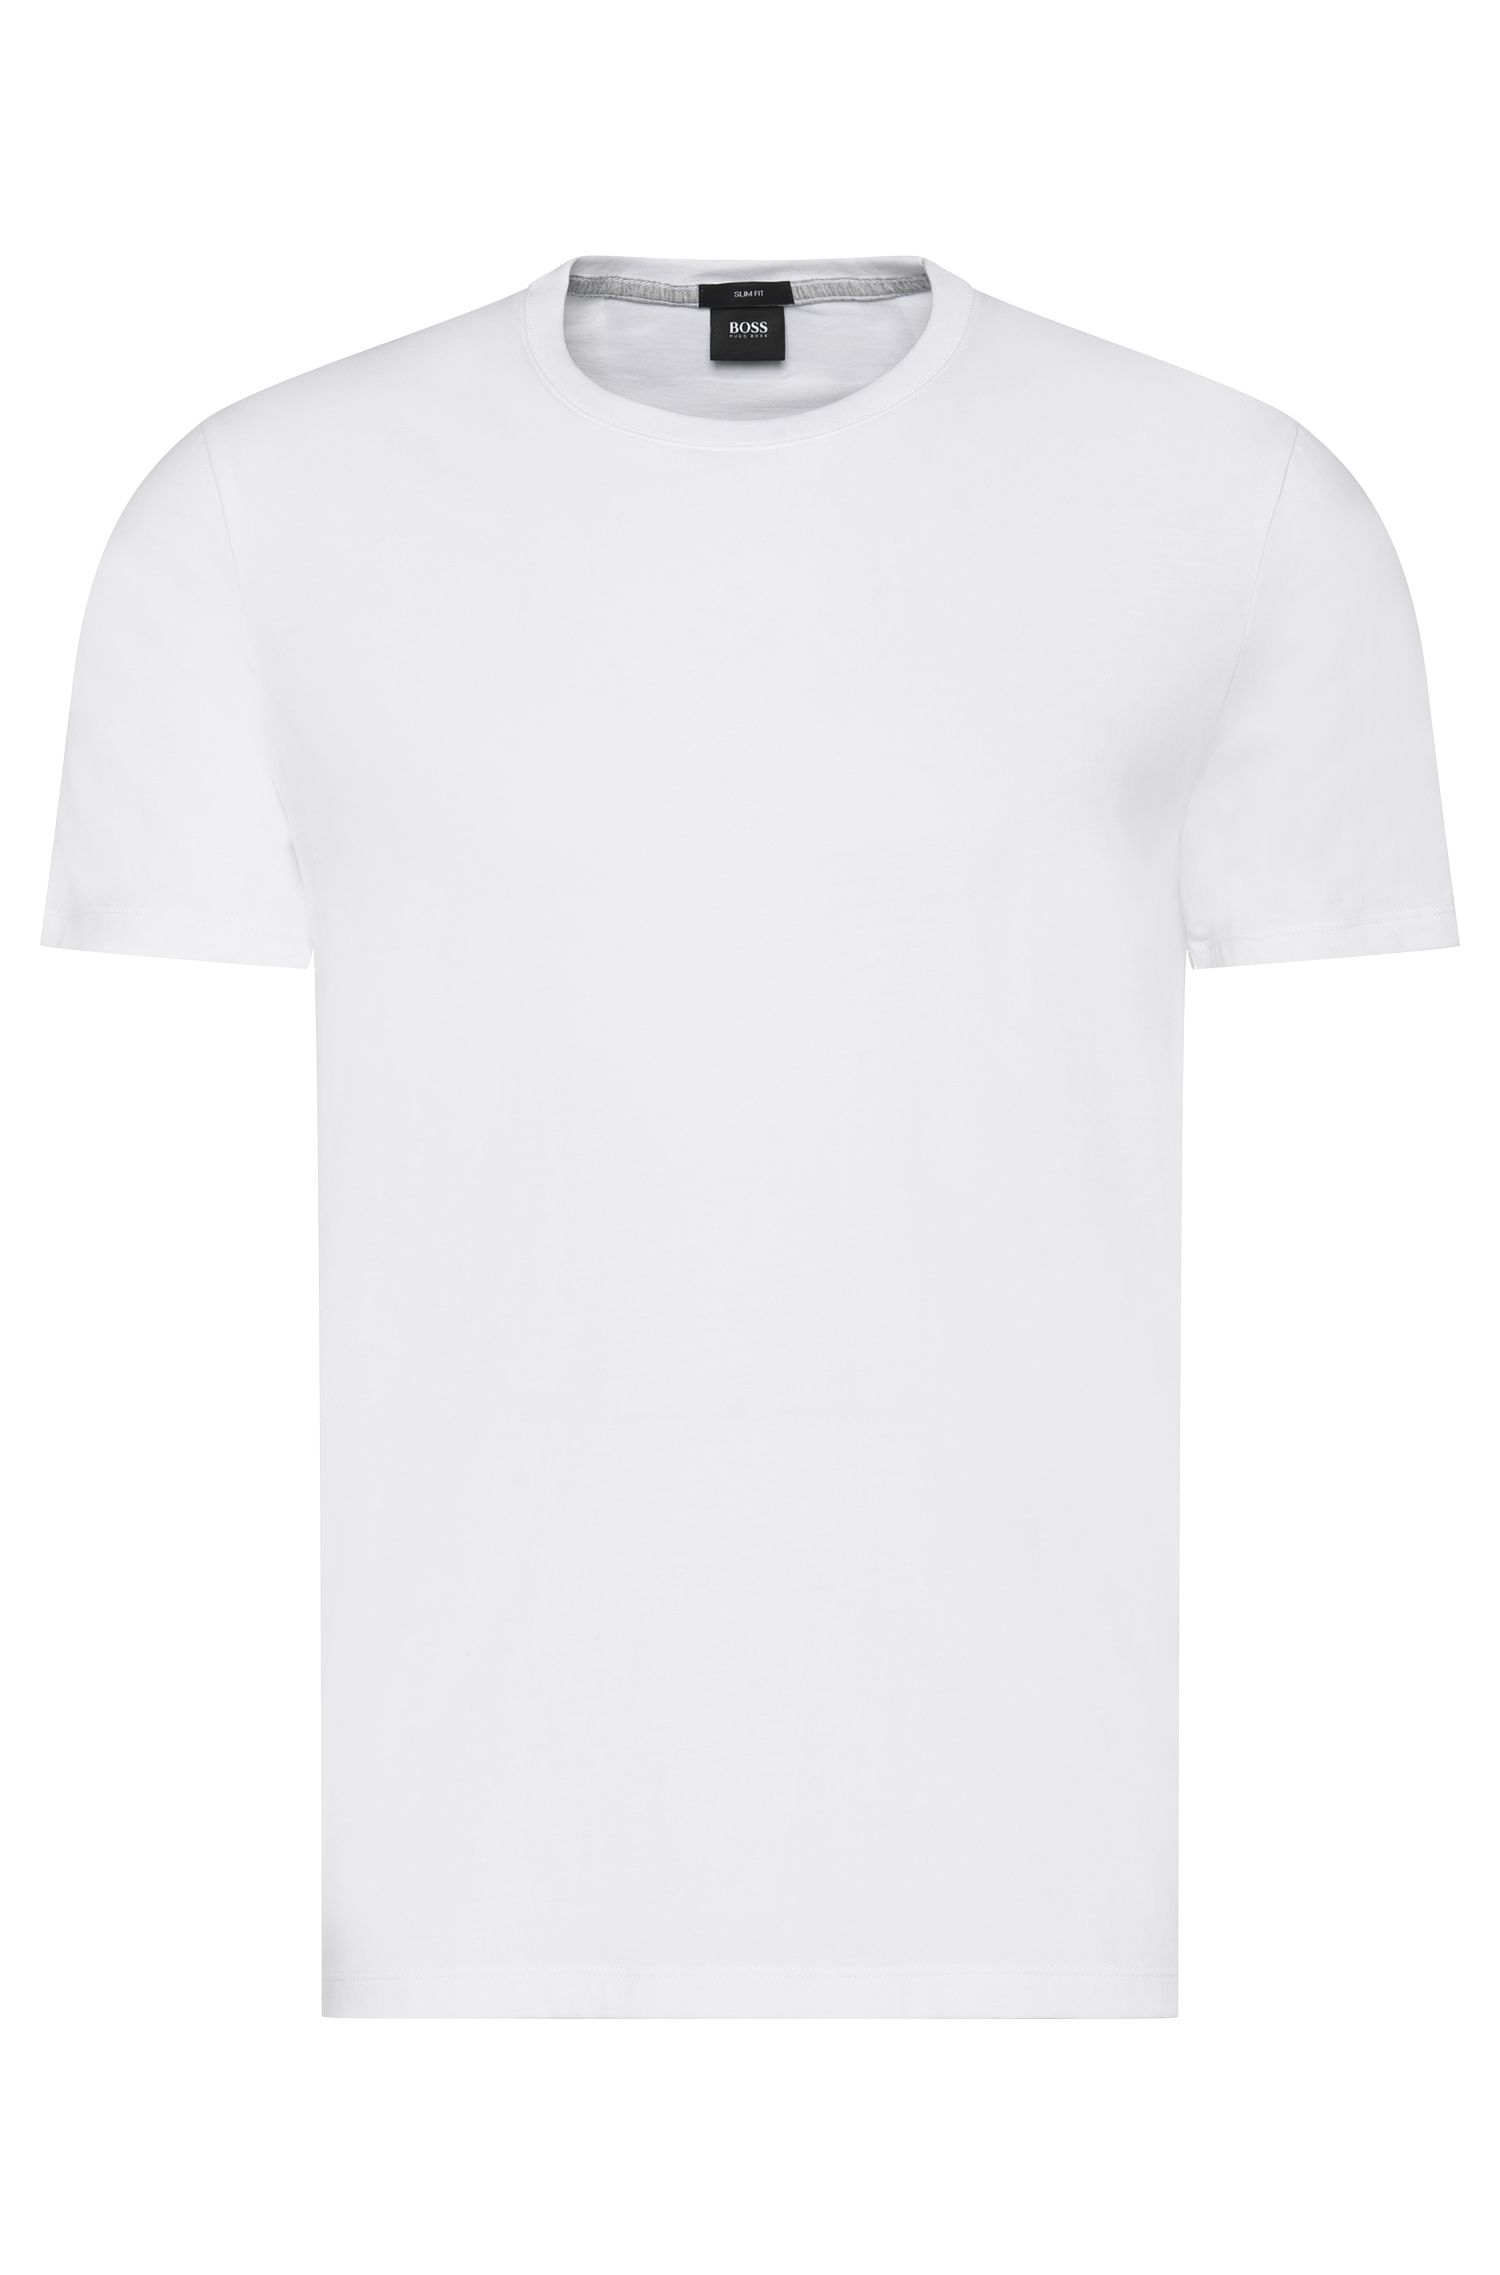 T-shirt Slim Fit en coton : « Tessler 09 »